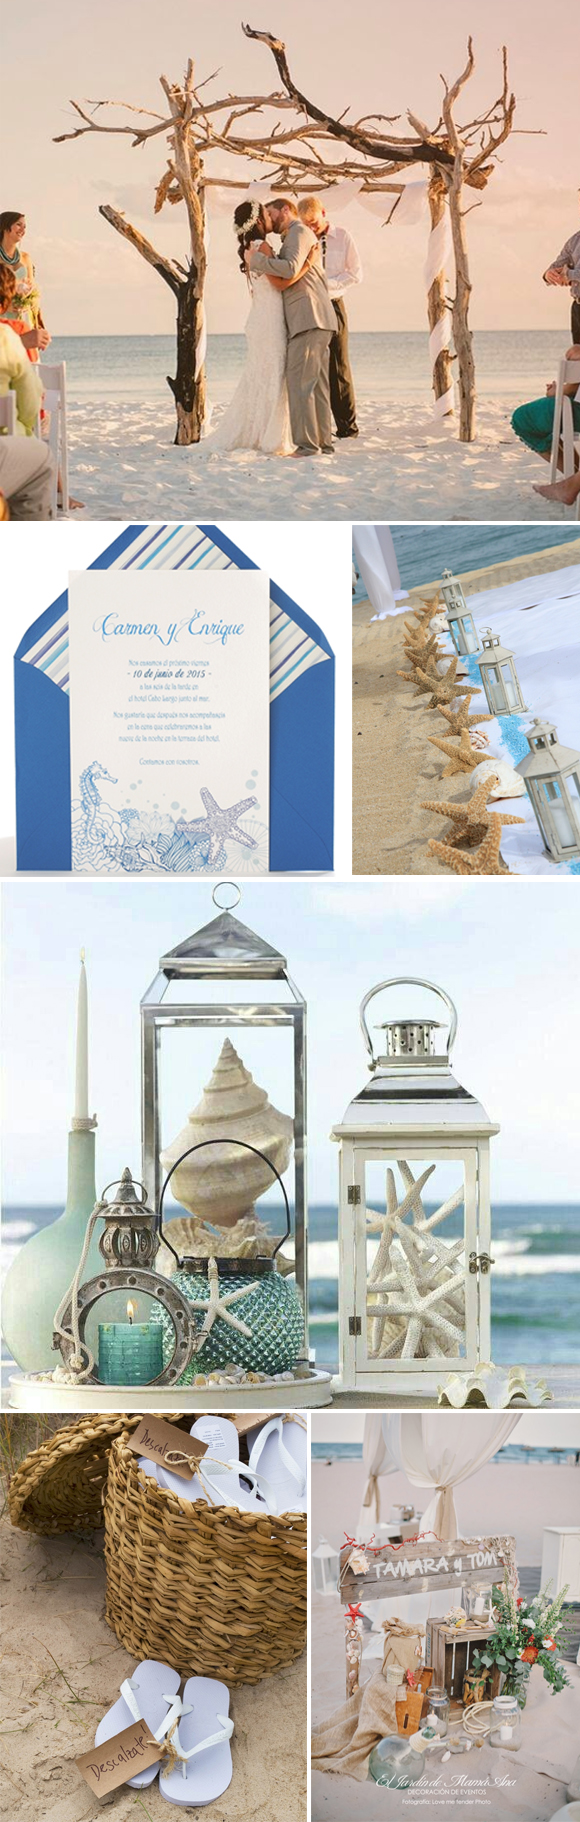 Decorar una boda en la playa - Ideas para una boda en la playa ...